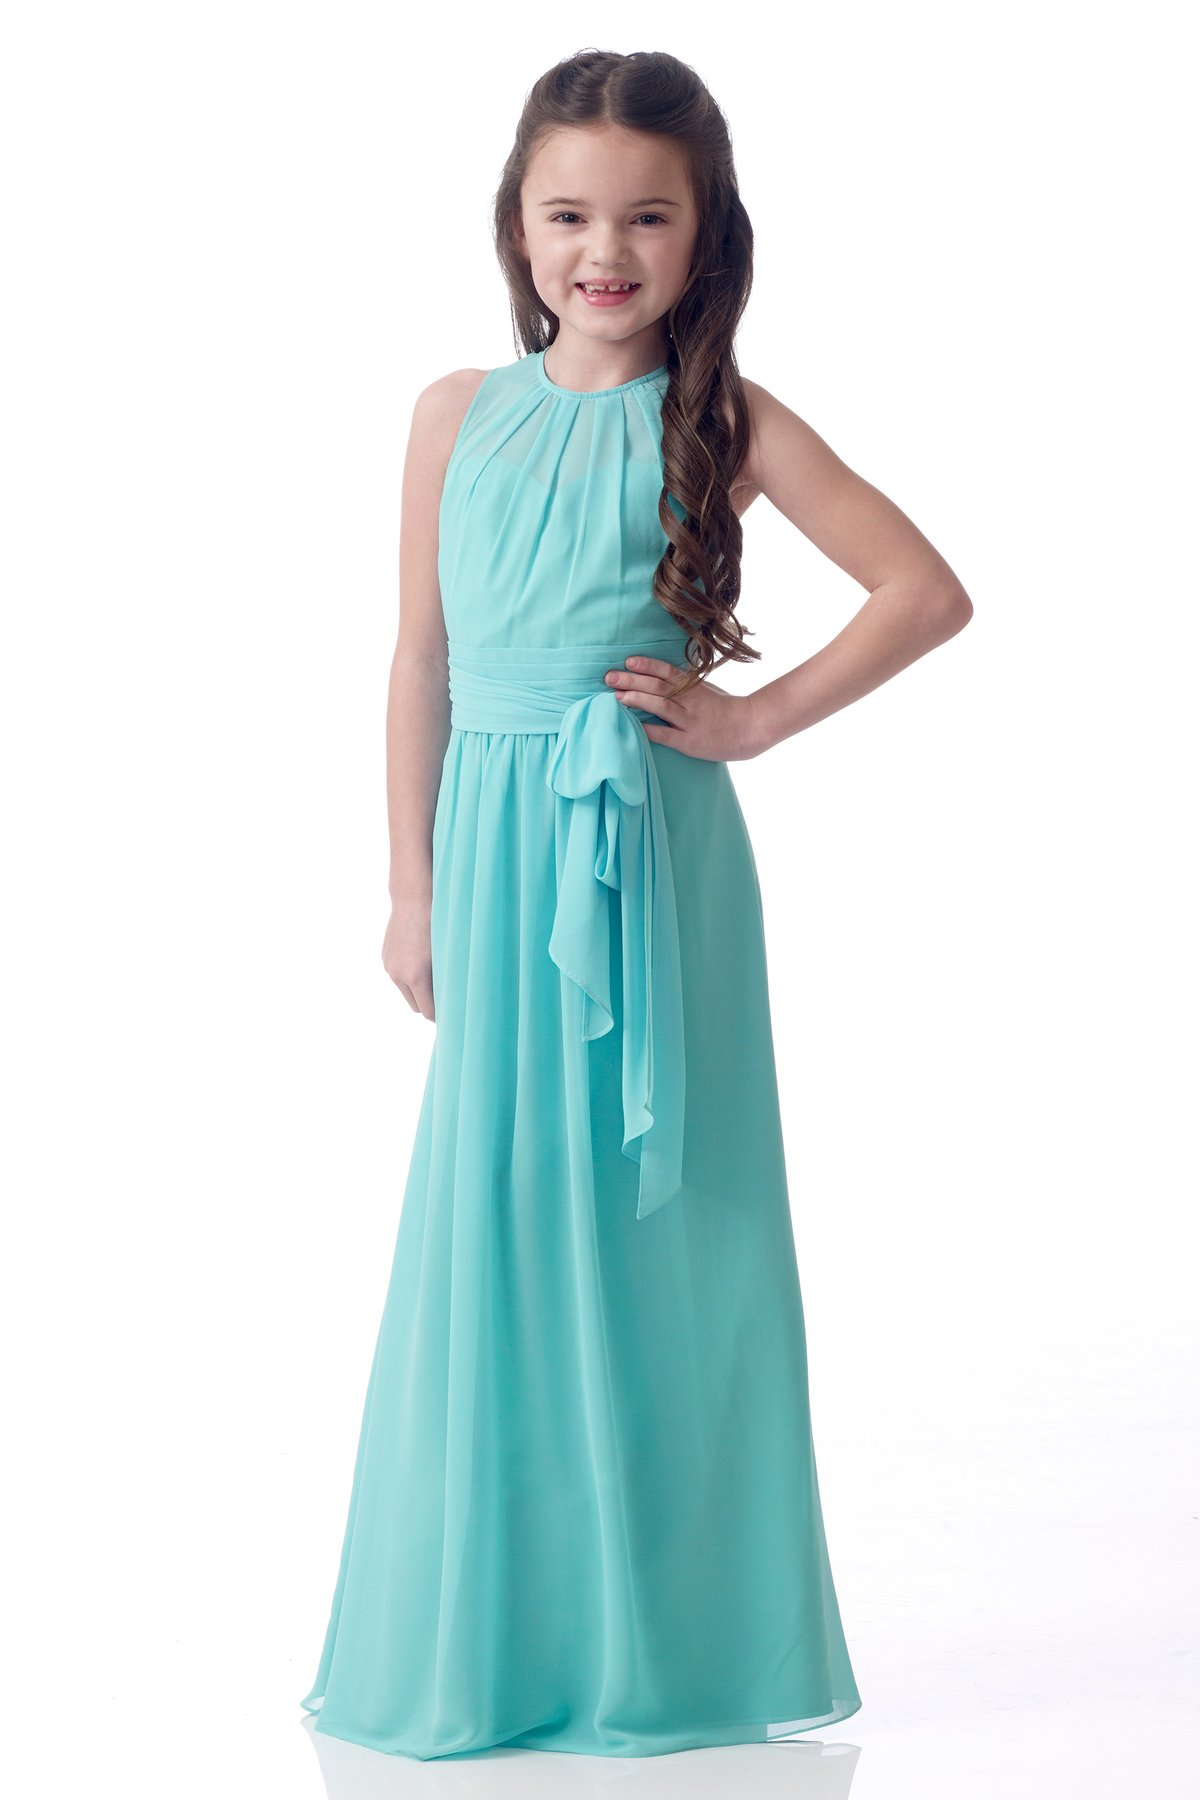 Adorable junior bridesmaid dresses from alexia designs find your jr55 ombrellifo Images